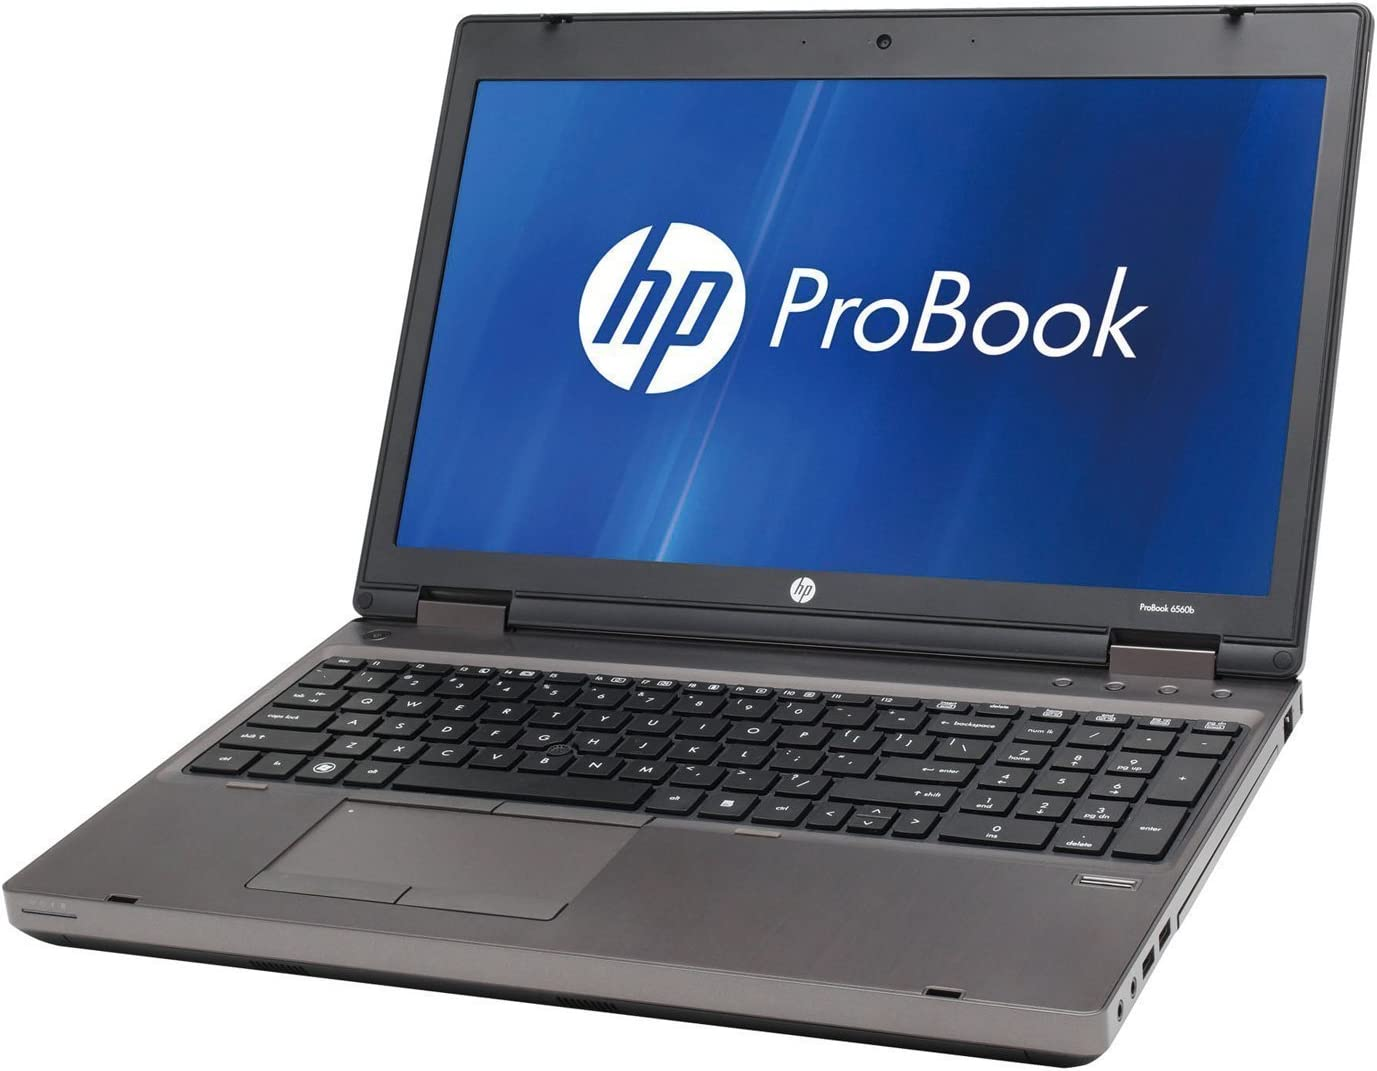 "HP ProBook 6560b Laptop 15.6"",Intel i5,8GB RAM,320GB HDD,Win10 Home (Renewed)"